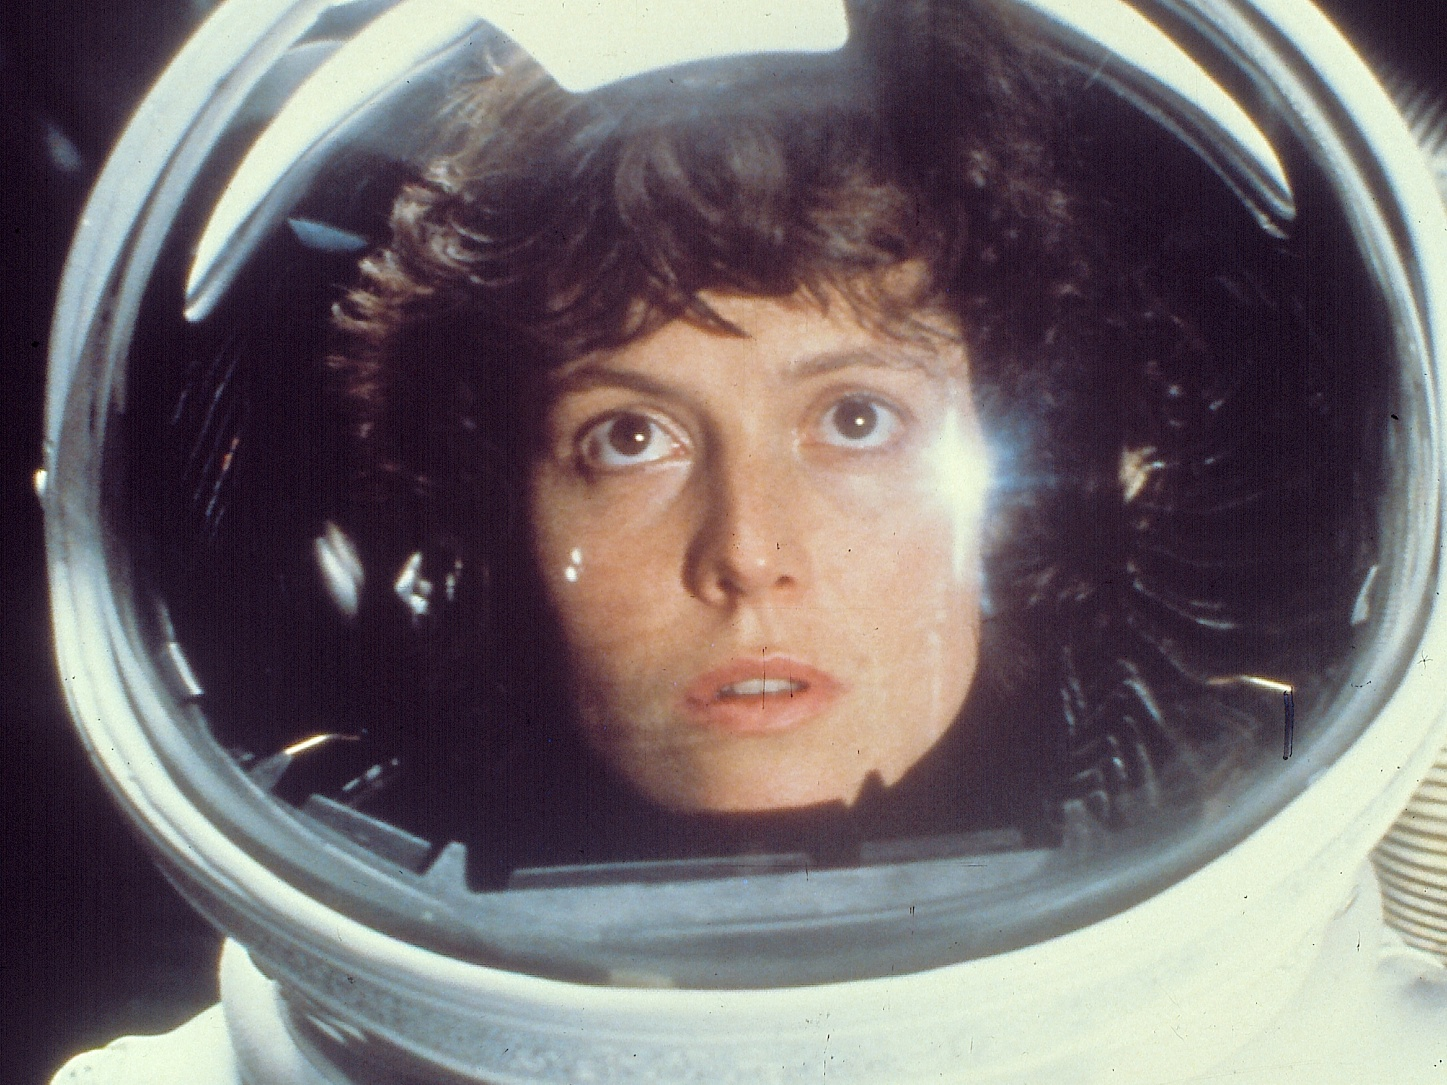 bfi film audience network announces scifi days of fear